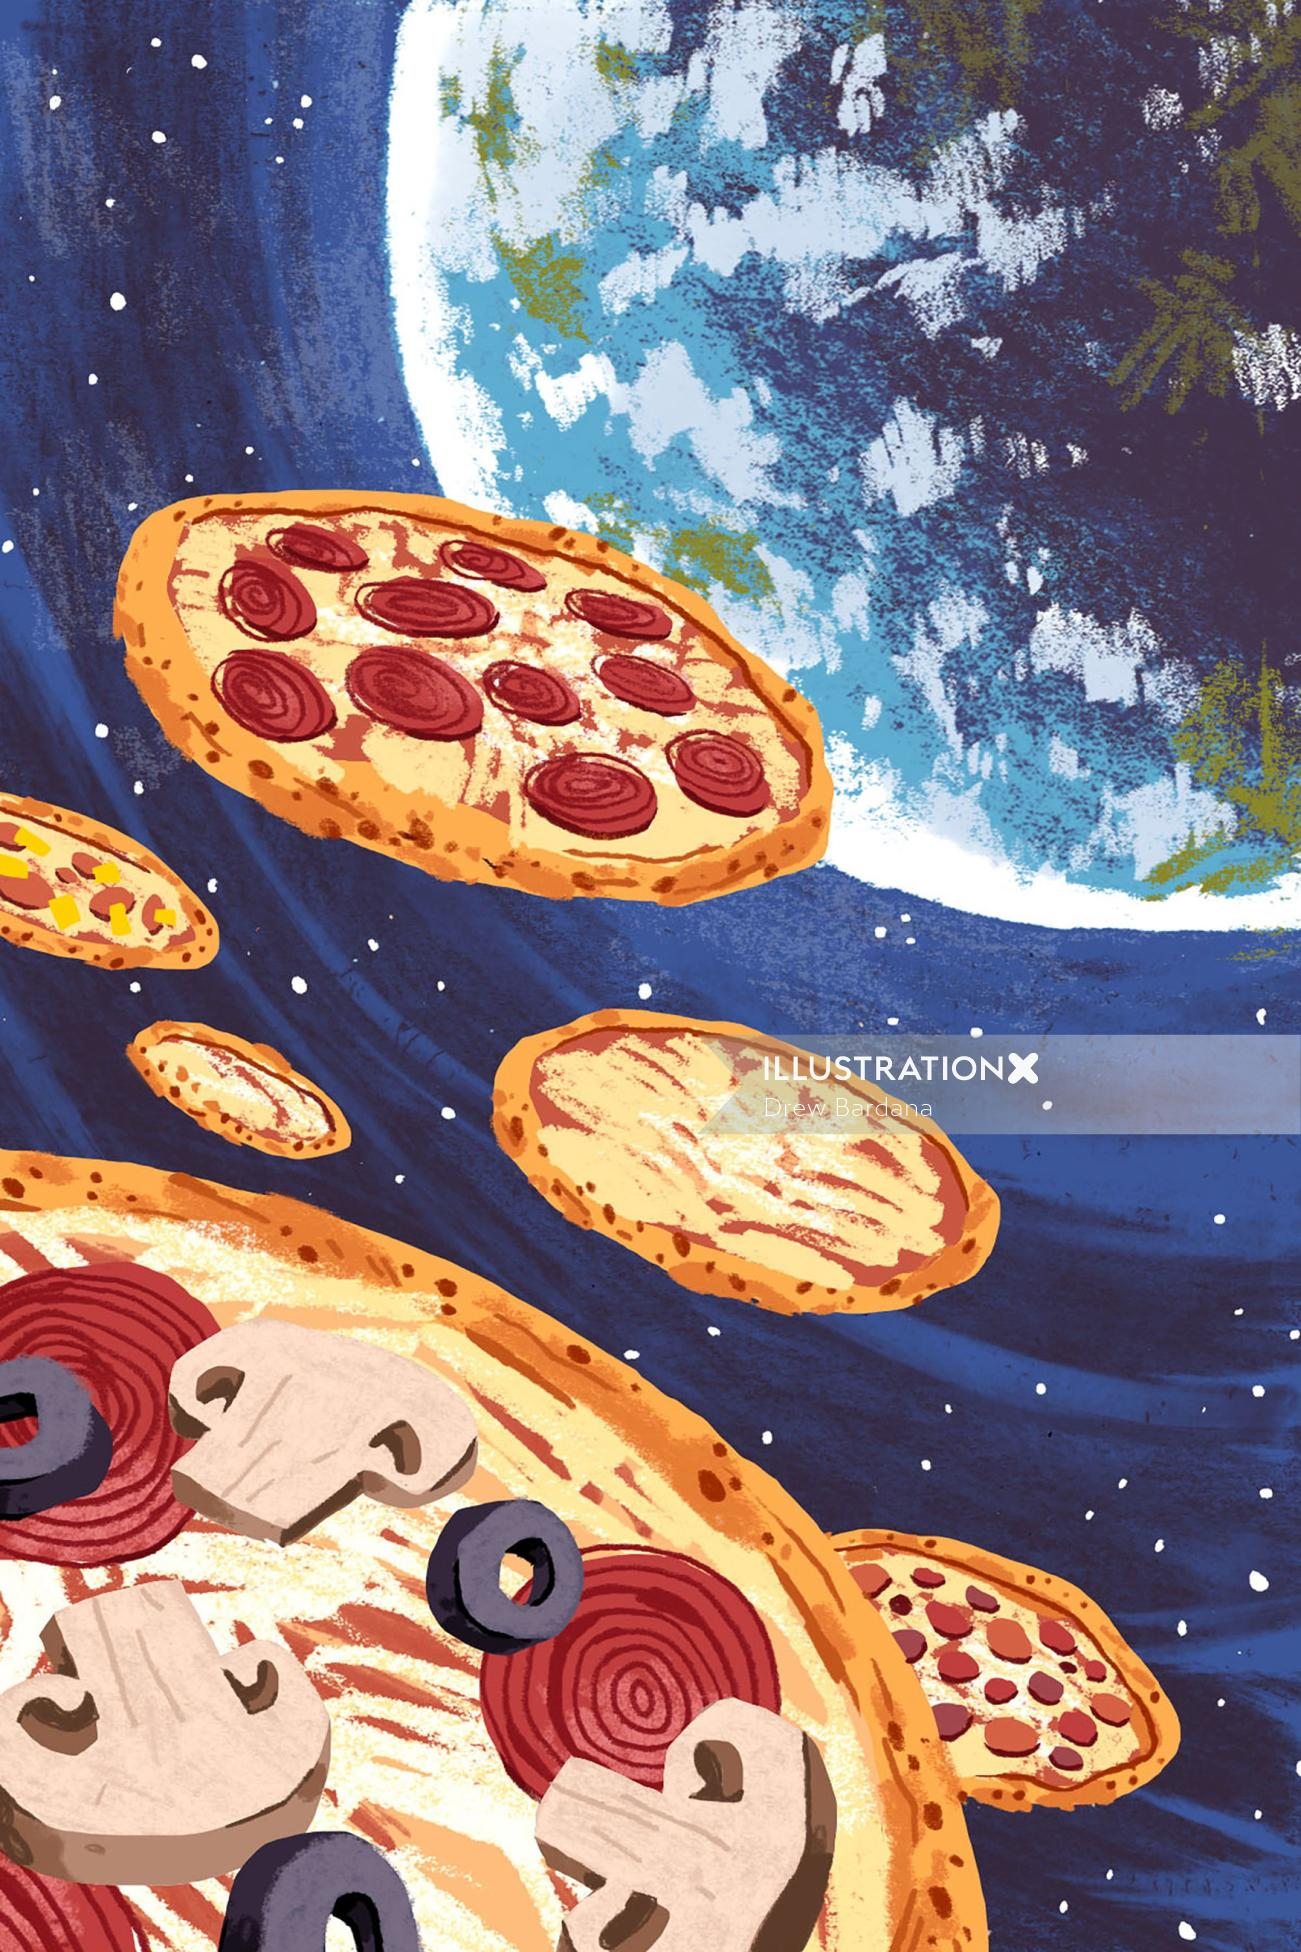 graphic pizza in space